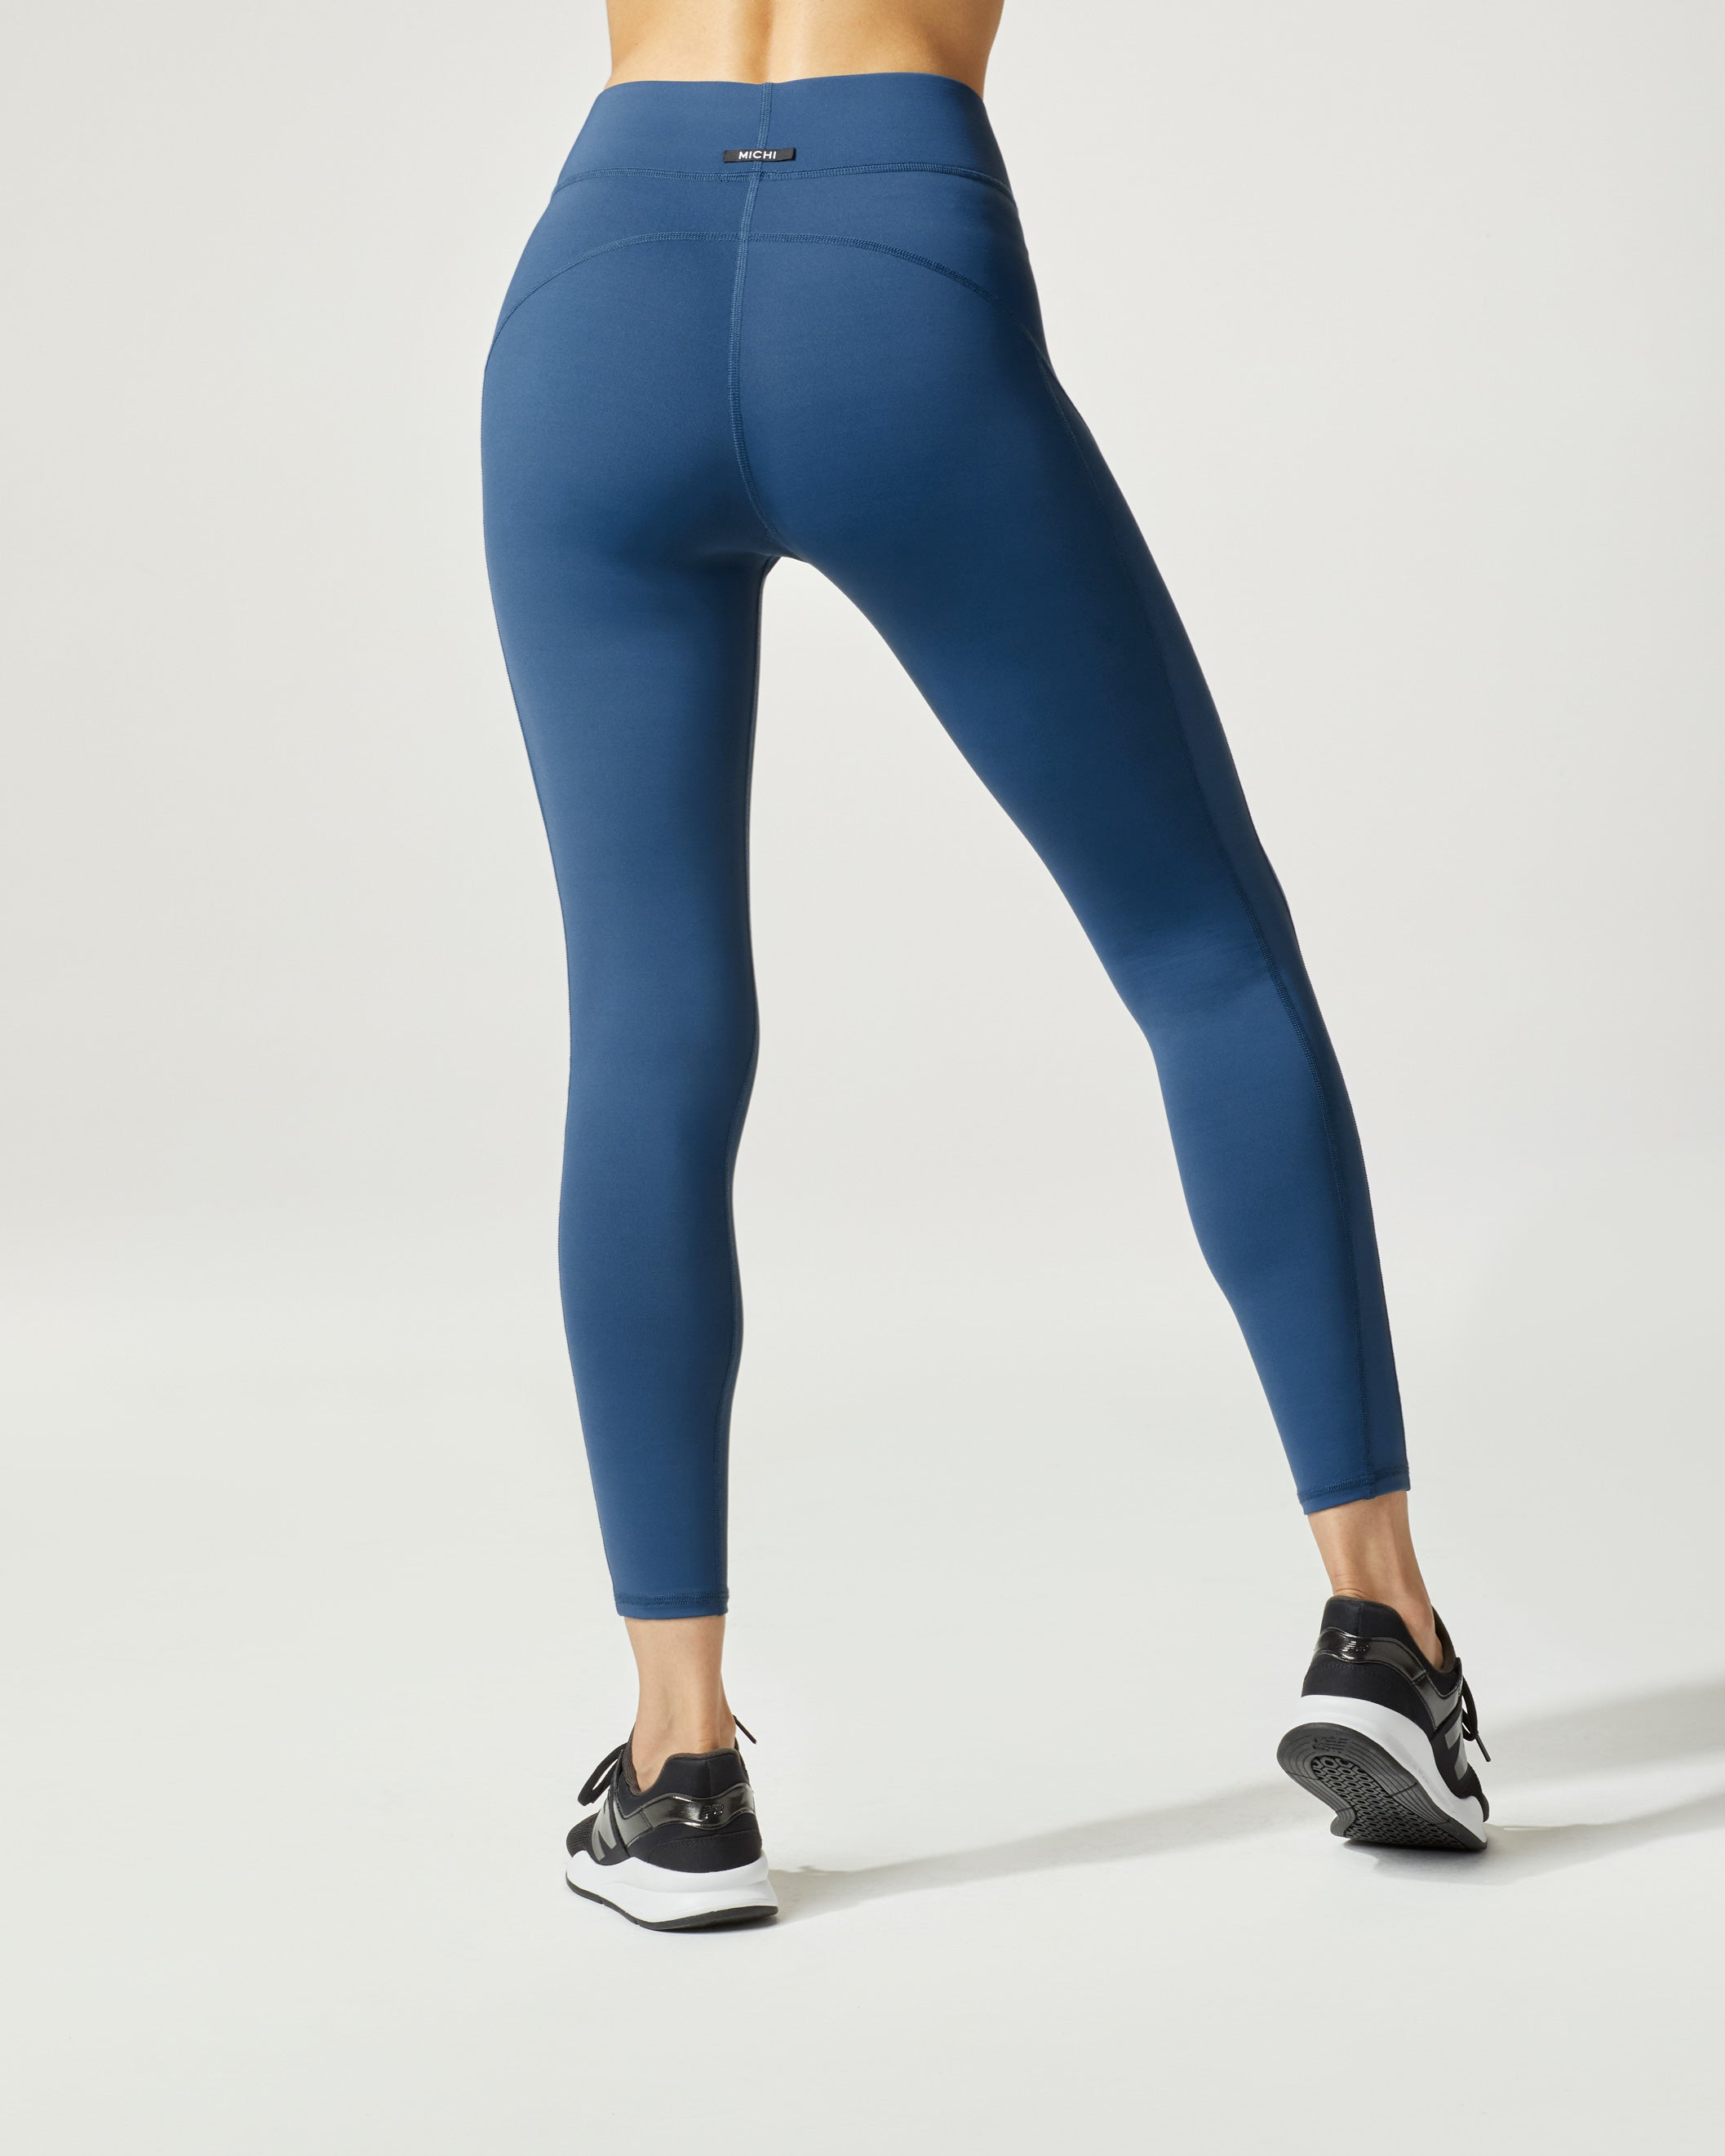 Stardust Shine Legging - Ink